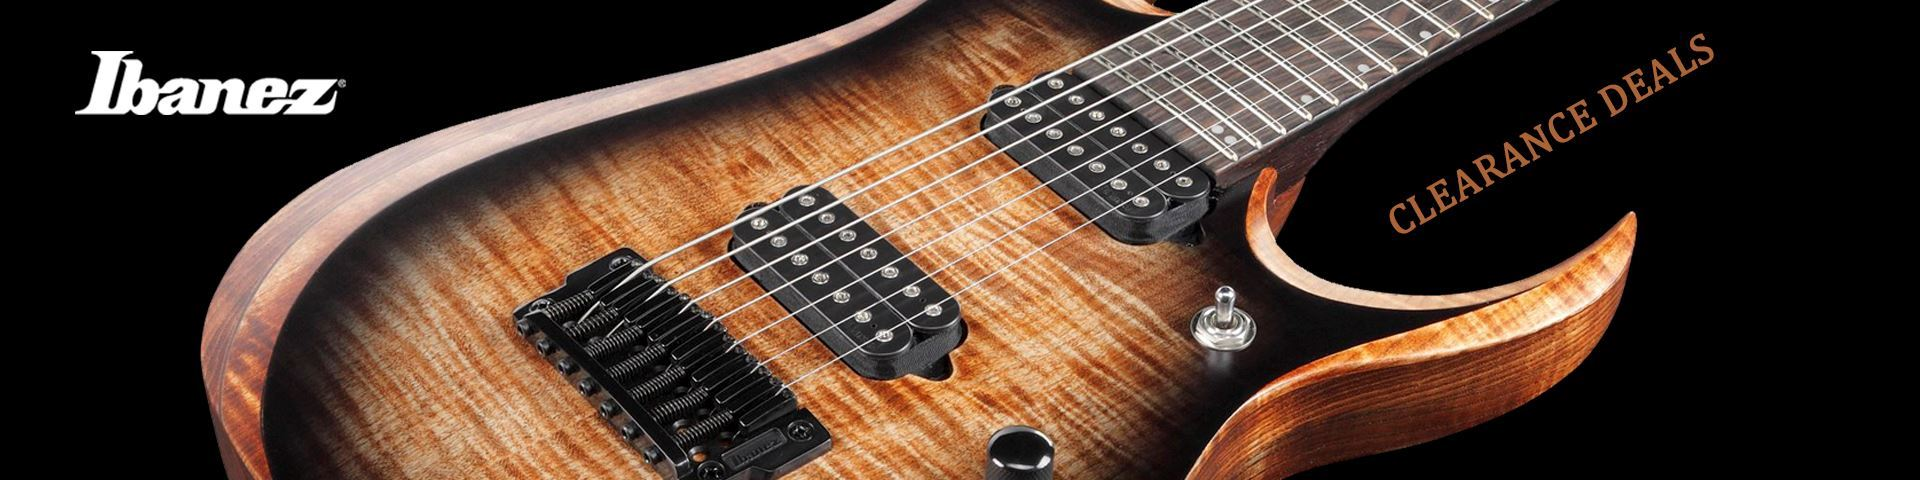 Ibanez Guitars - Clearance Specials